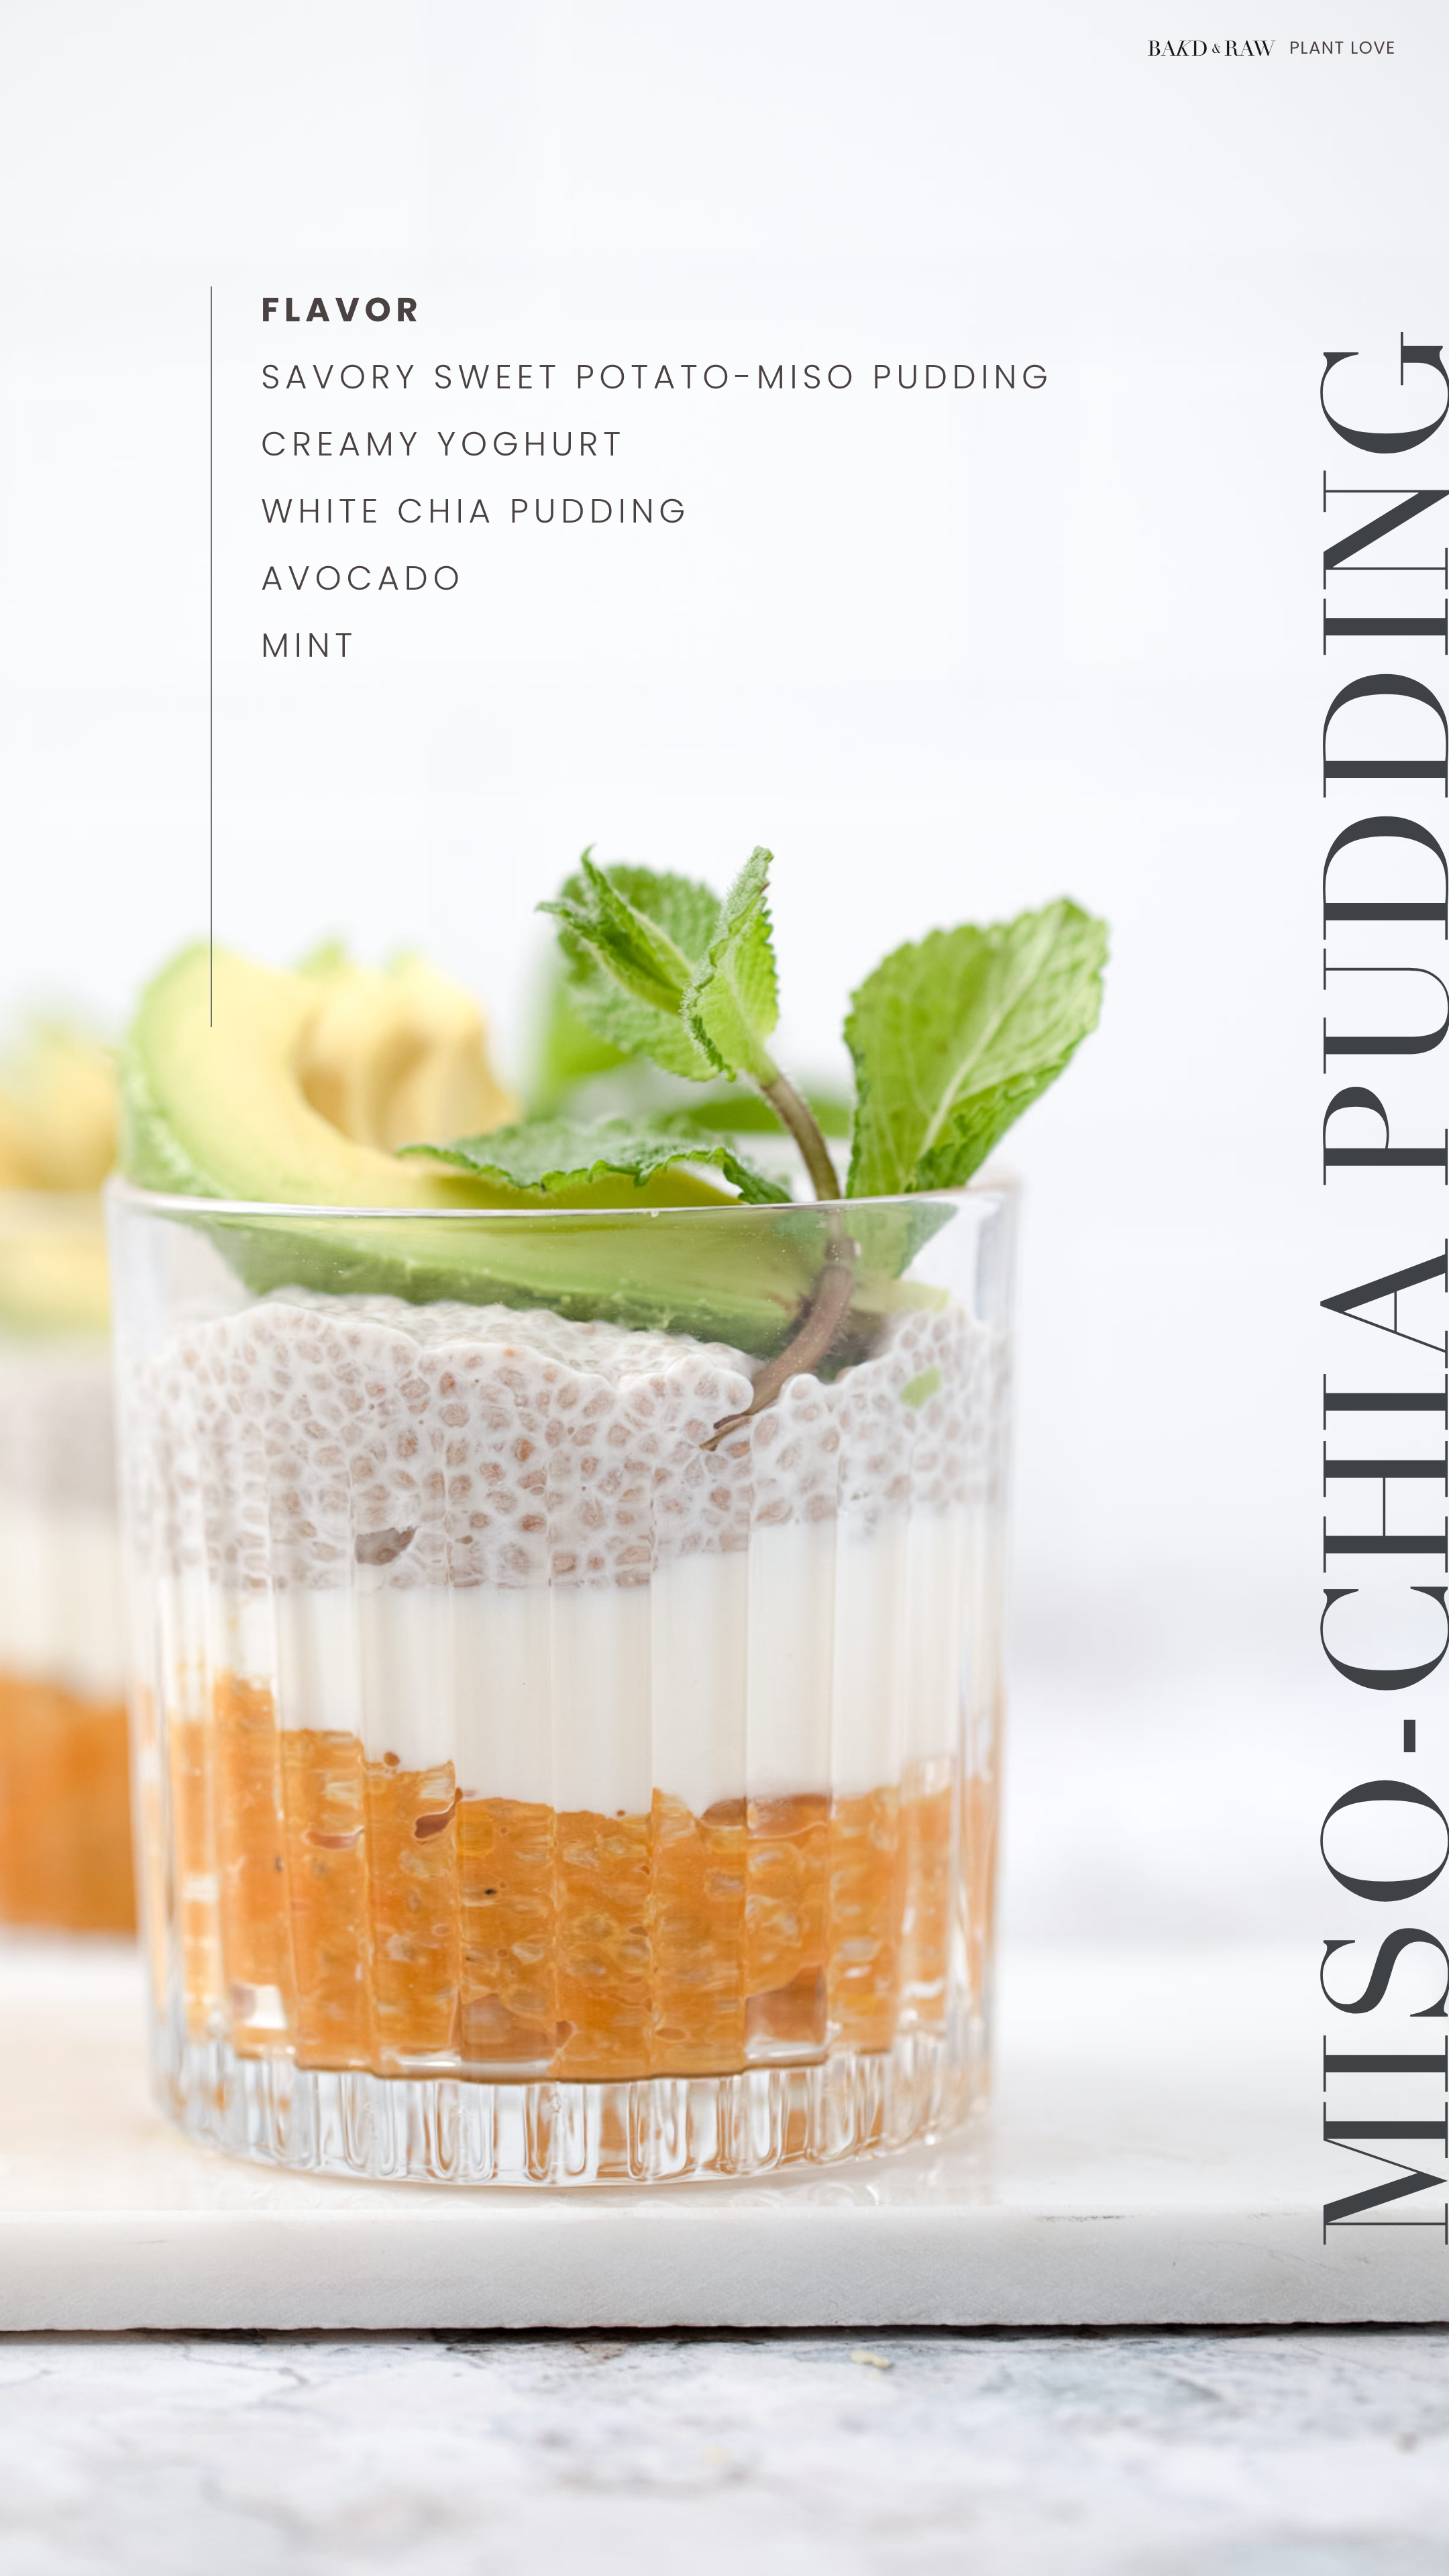 Ingredient List Savory White Chia Pudding by Bakd&Raw